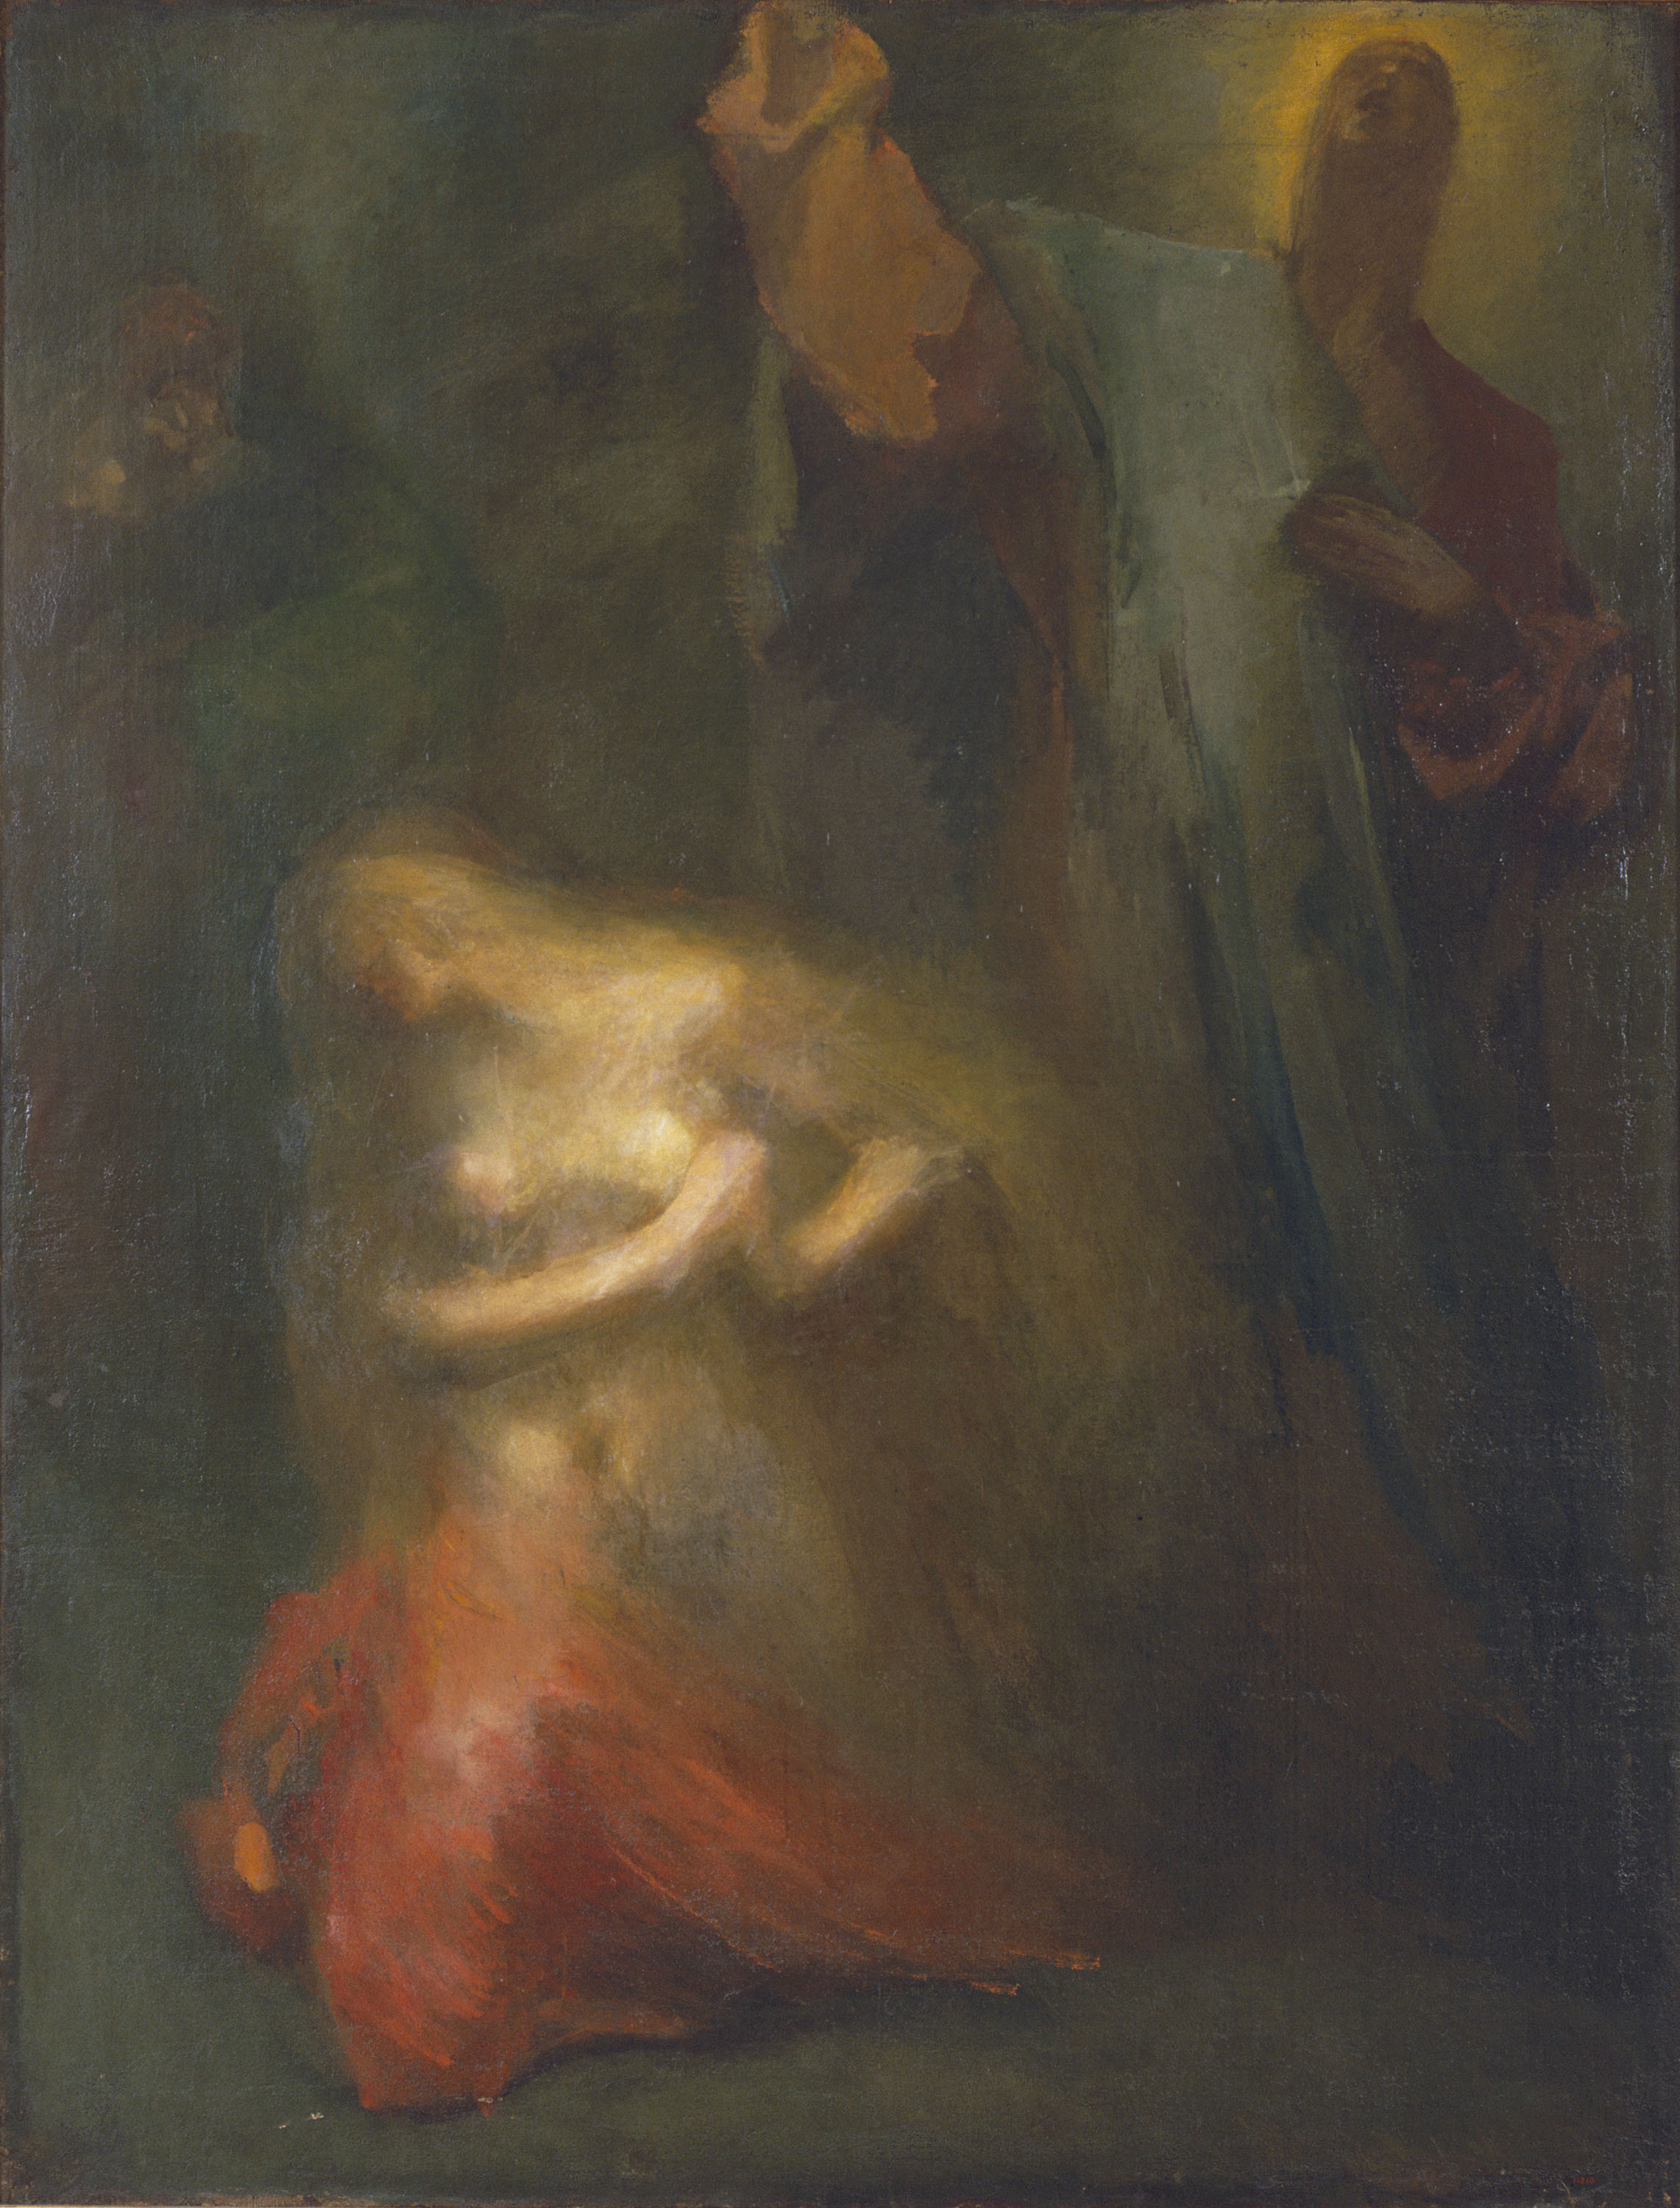 Aleix Clapés - Christ and Mary Magdalene  - Circa 1890-1918